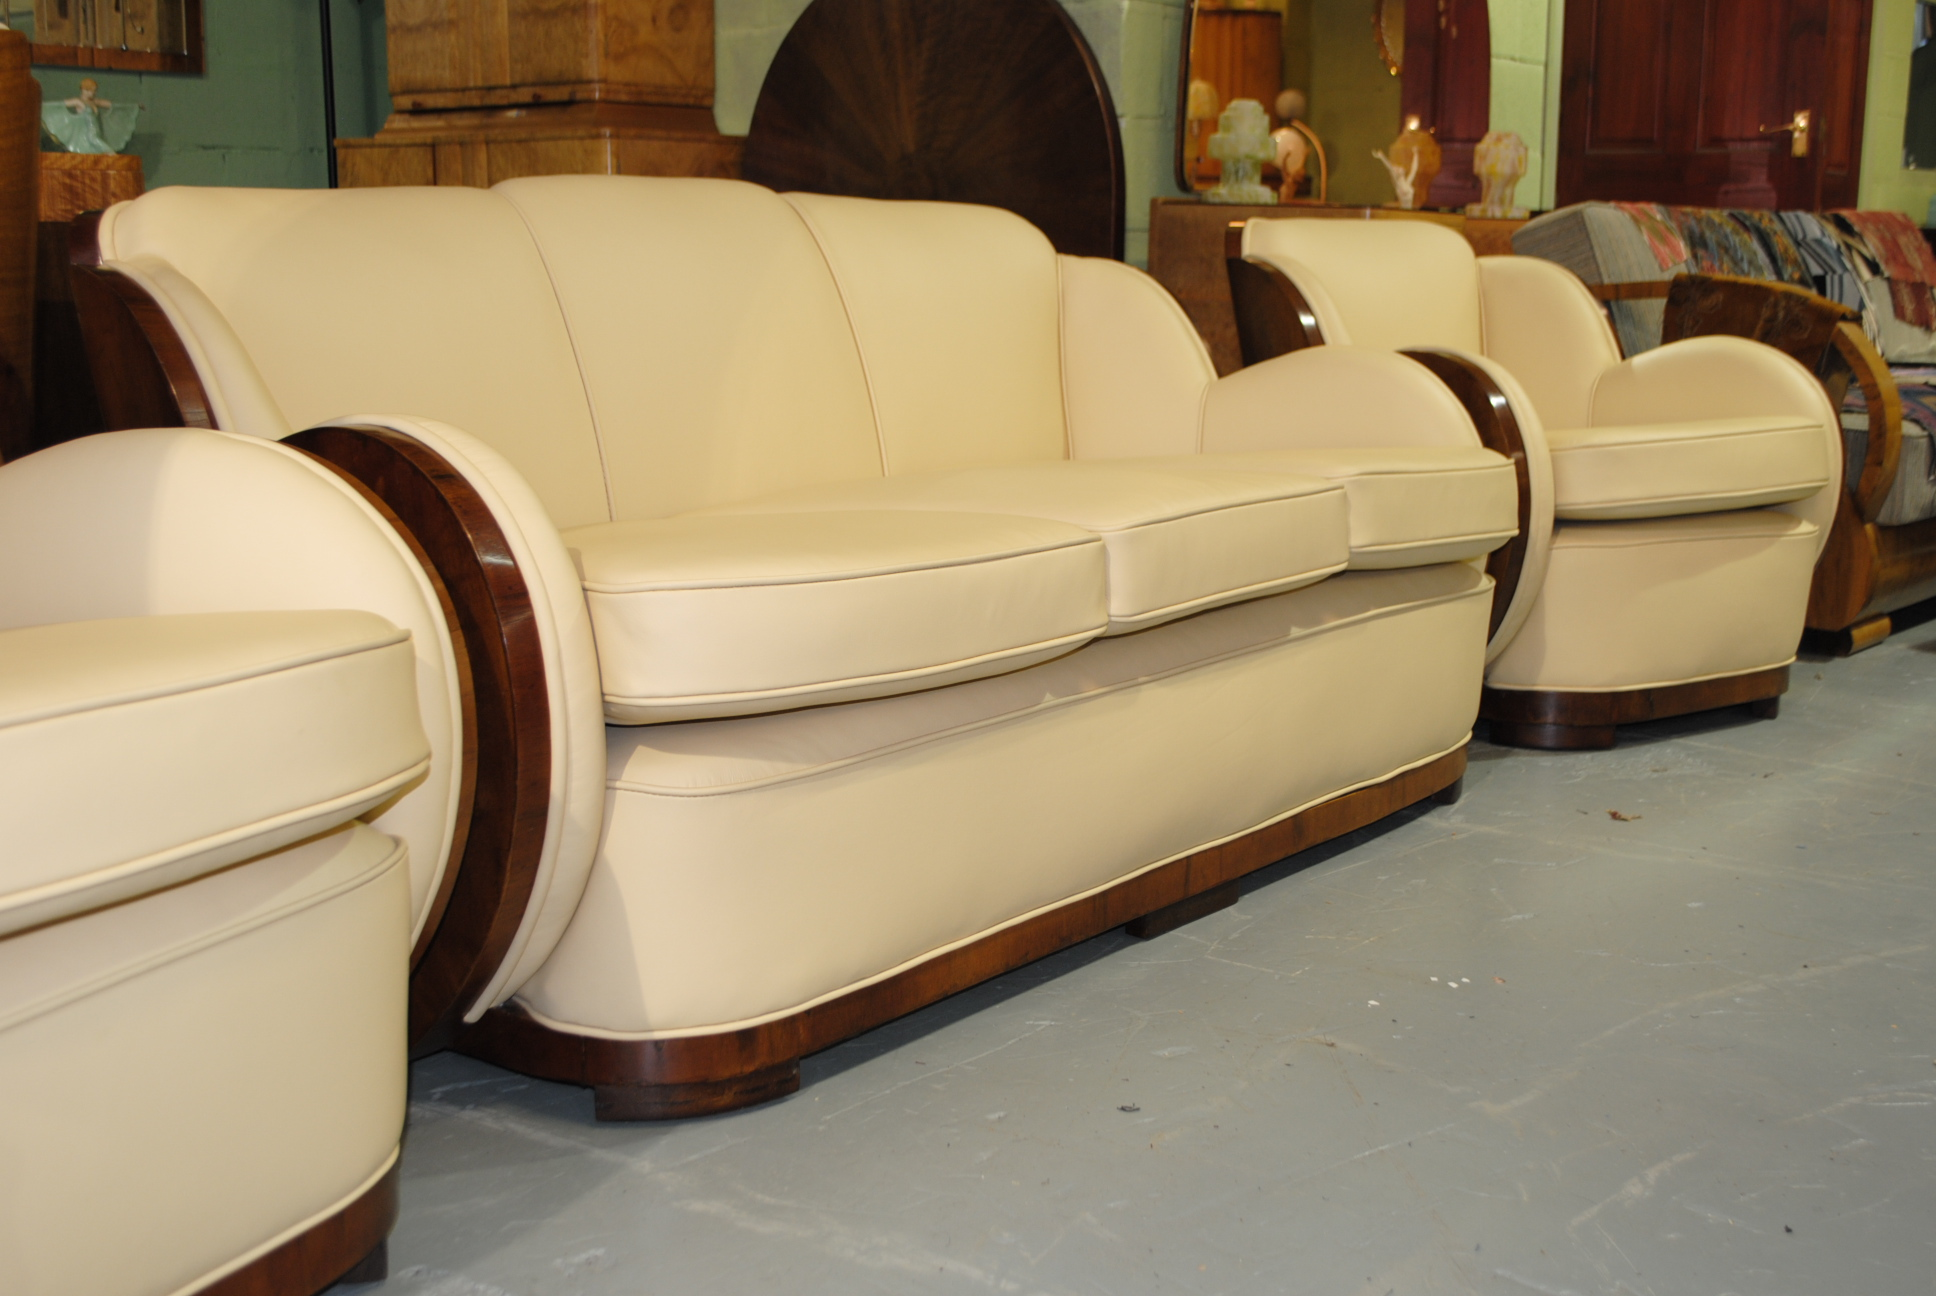 Epstein walnut cloudback 3 piece suite cloud 9 art deco furniture sales - Epstein art deco furniture ...